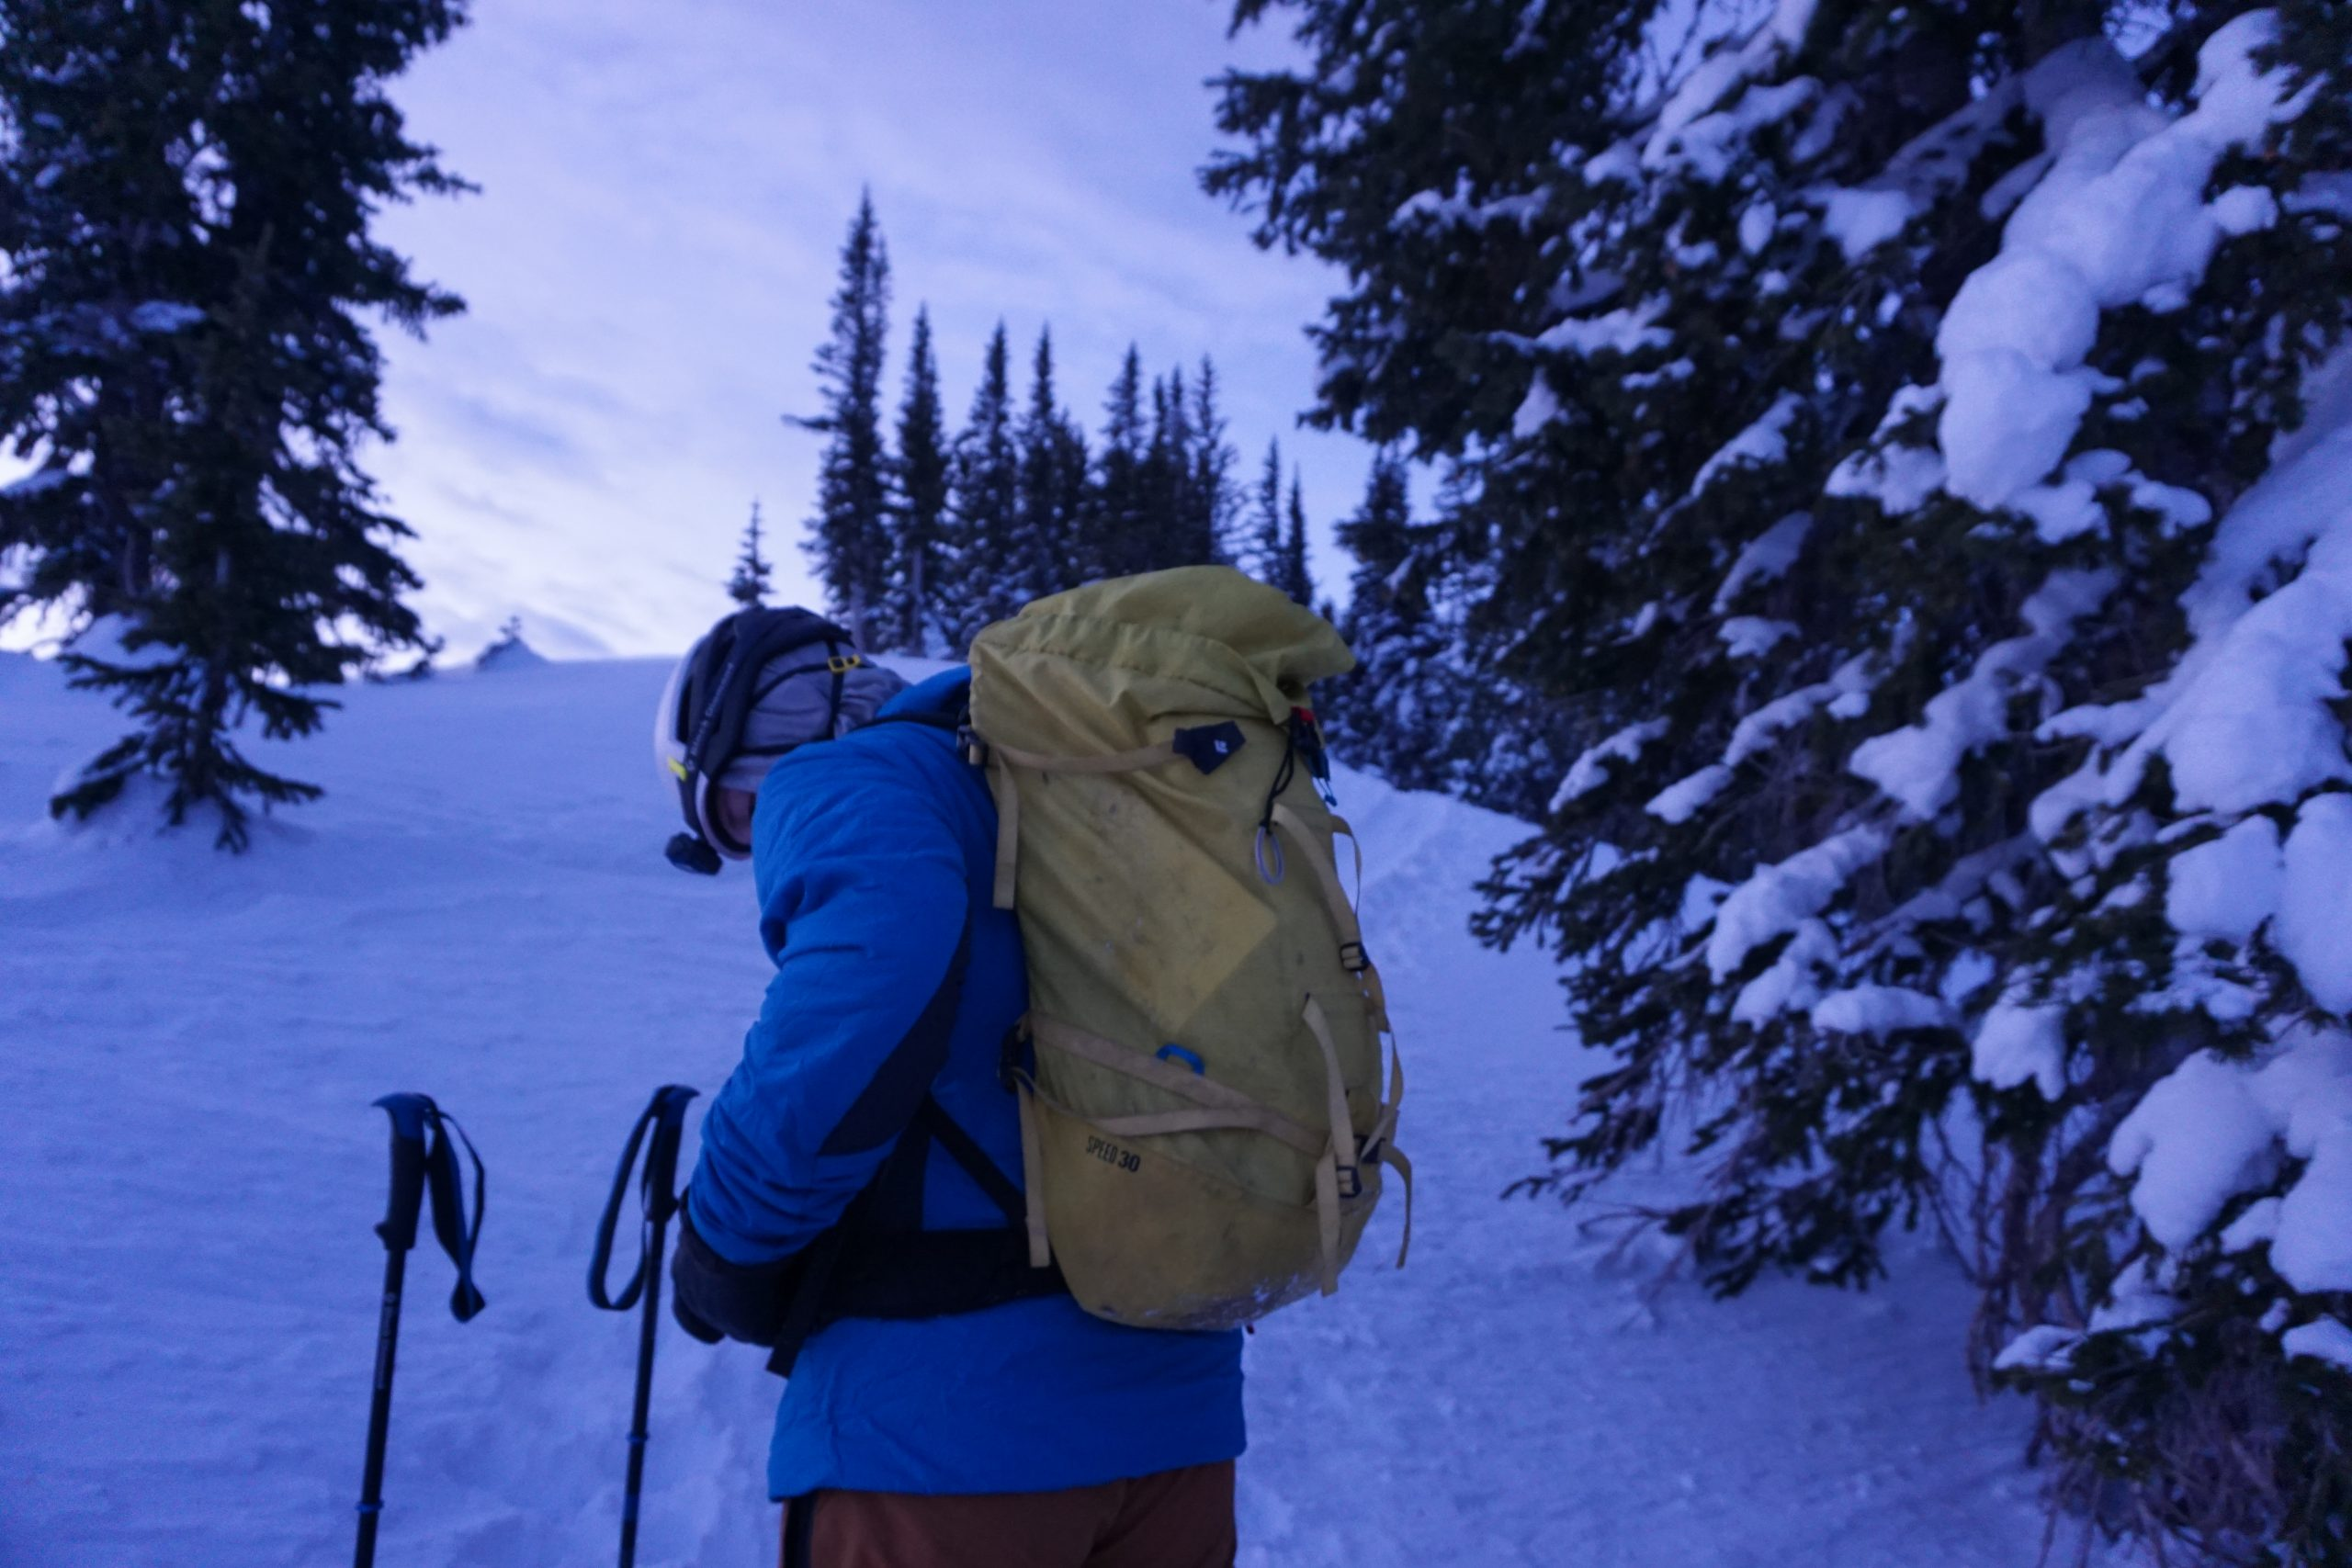 Black Diamond First Light Stretch Hoody Review - Backcountry Skiing in the Wasatch